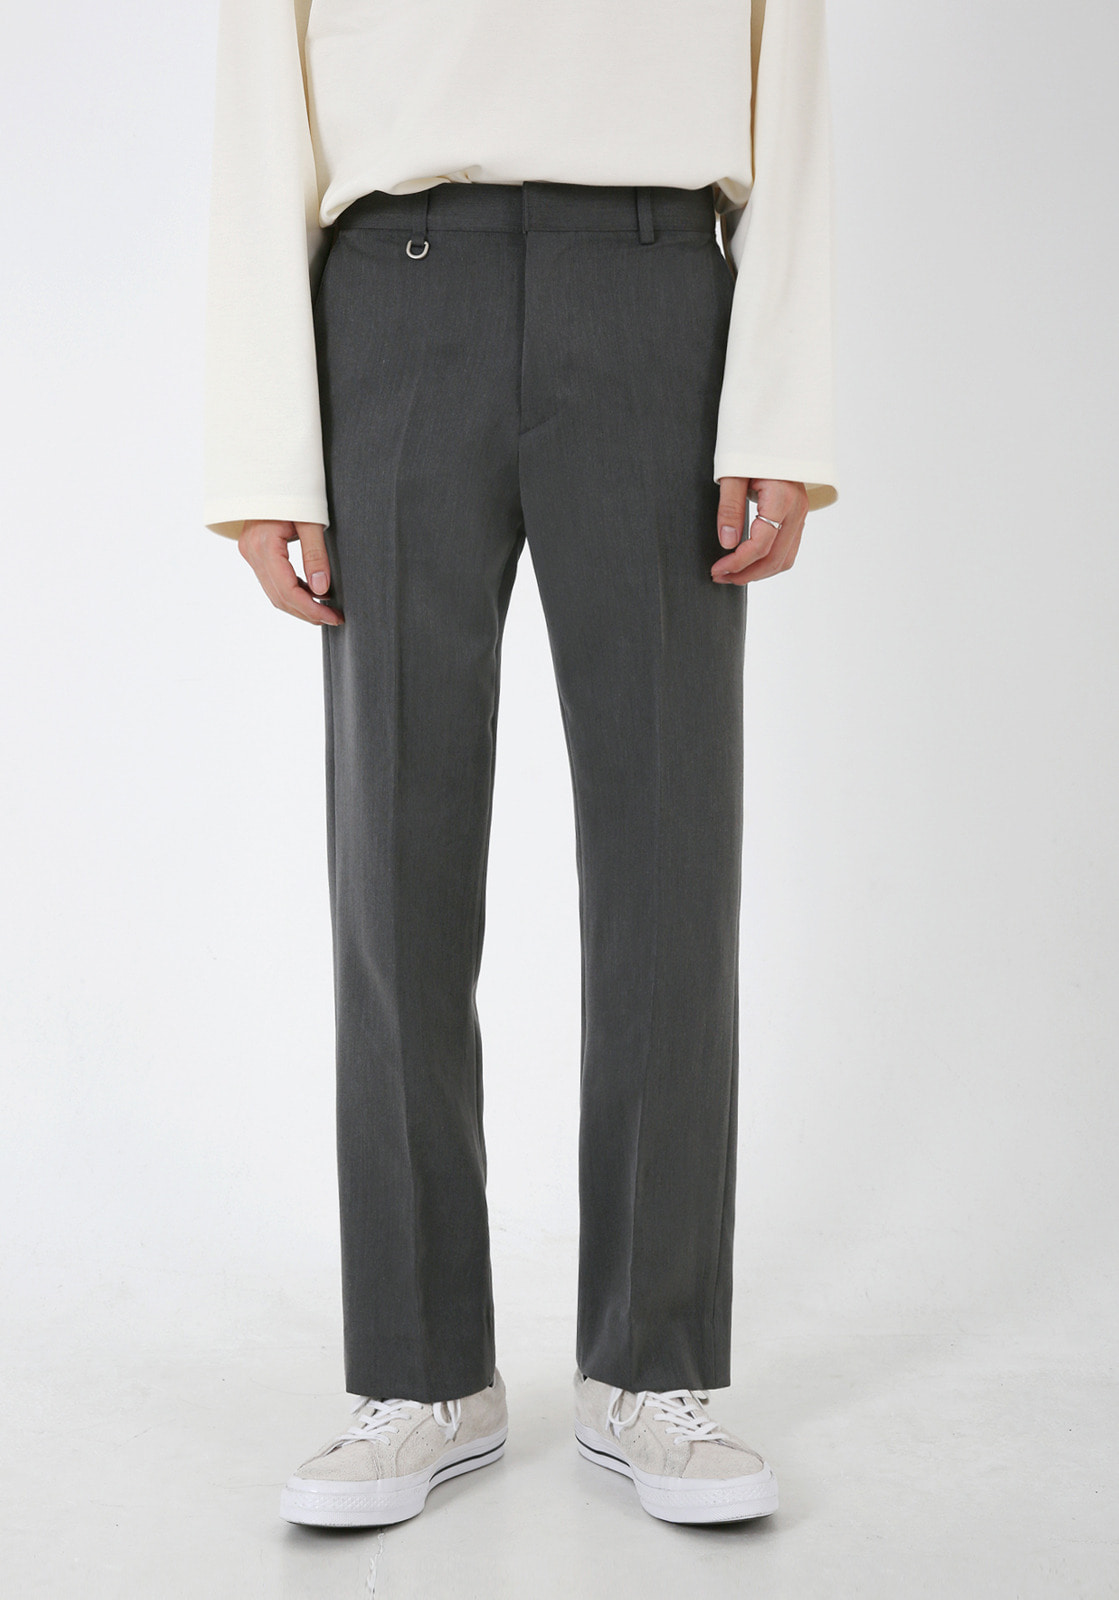 V304 LETO SLIM WIDE SLACKS  GRAY